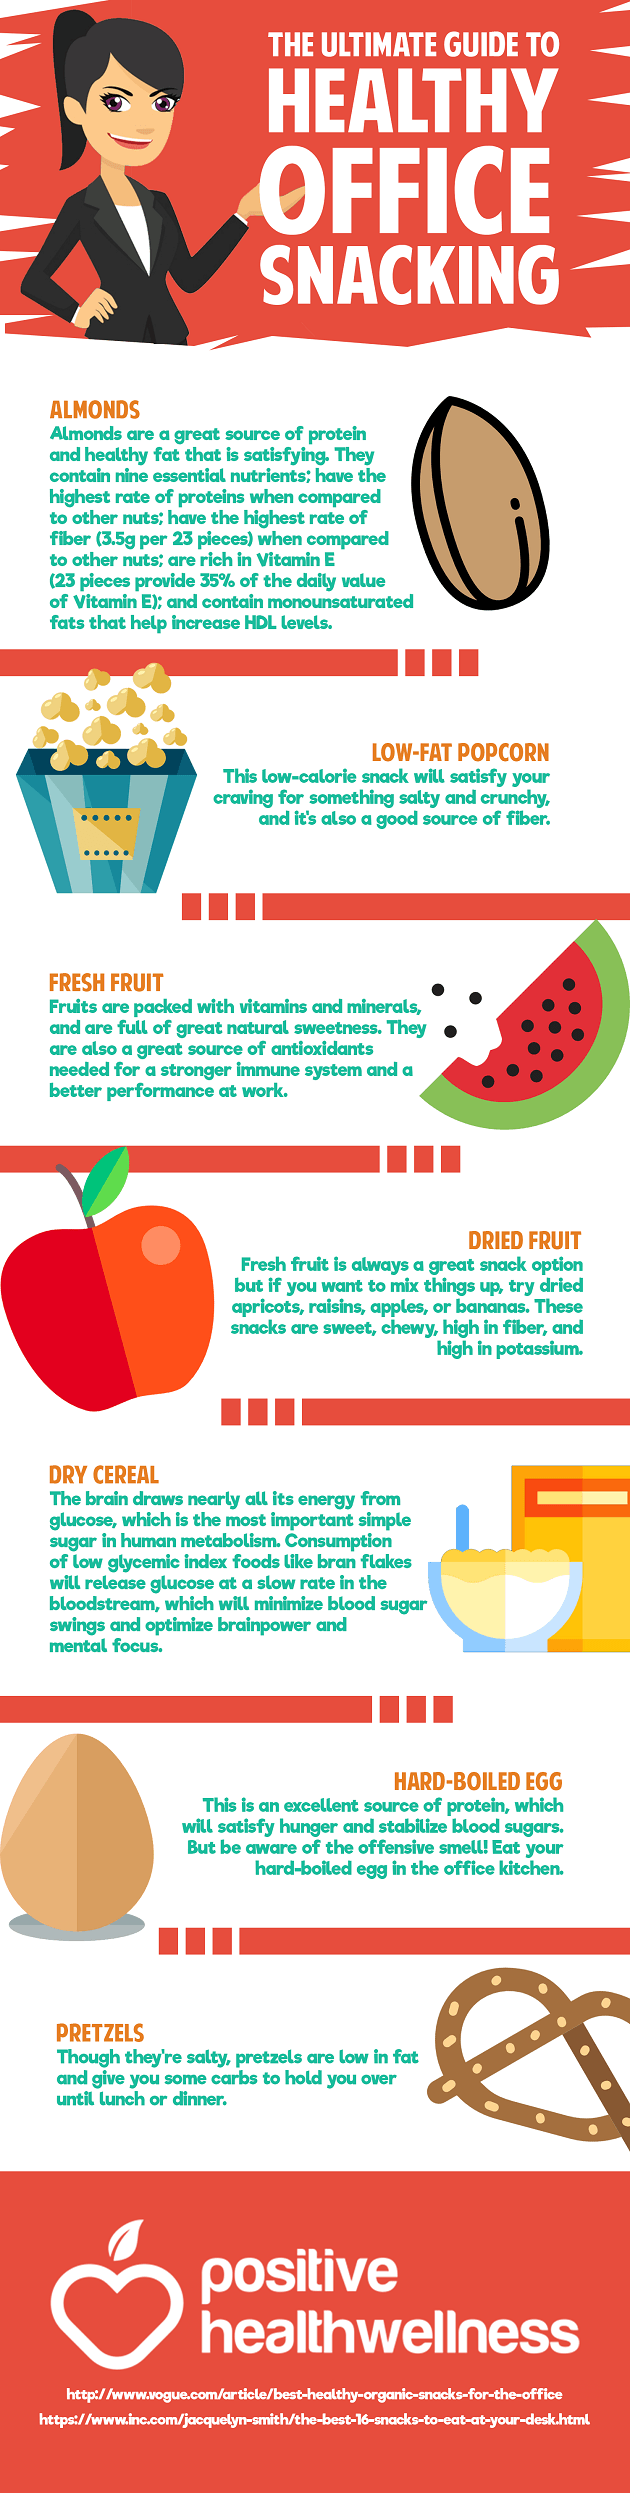 The Ultimate Guide To Healthy Office Snacking